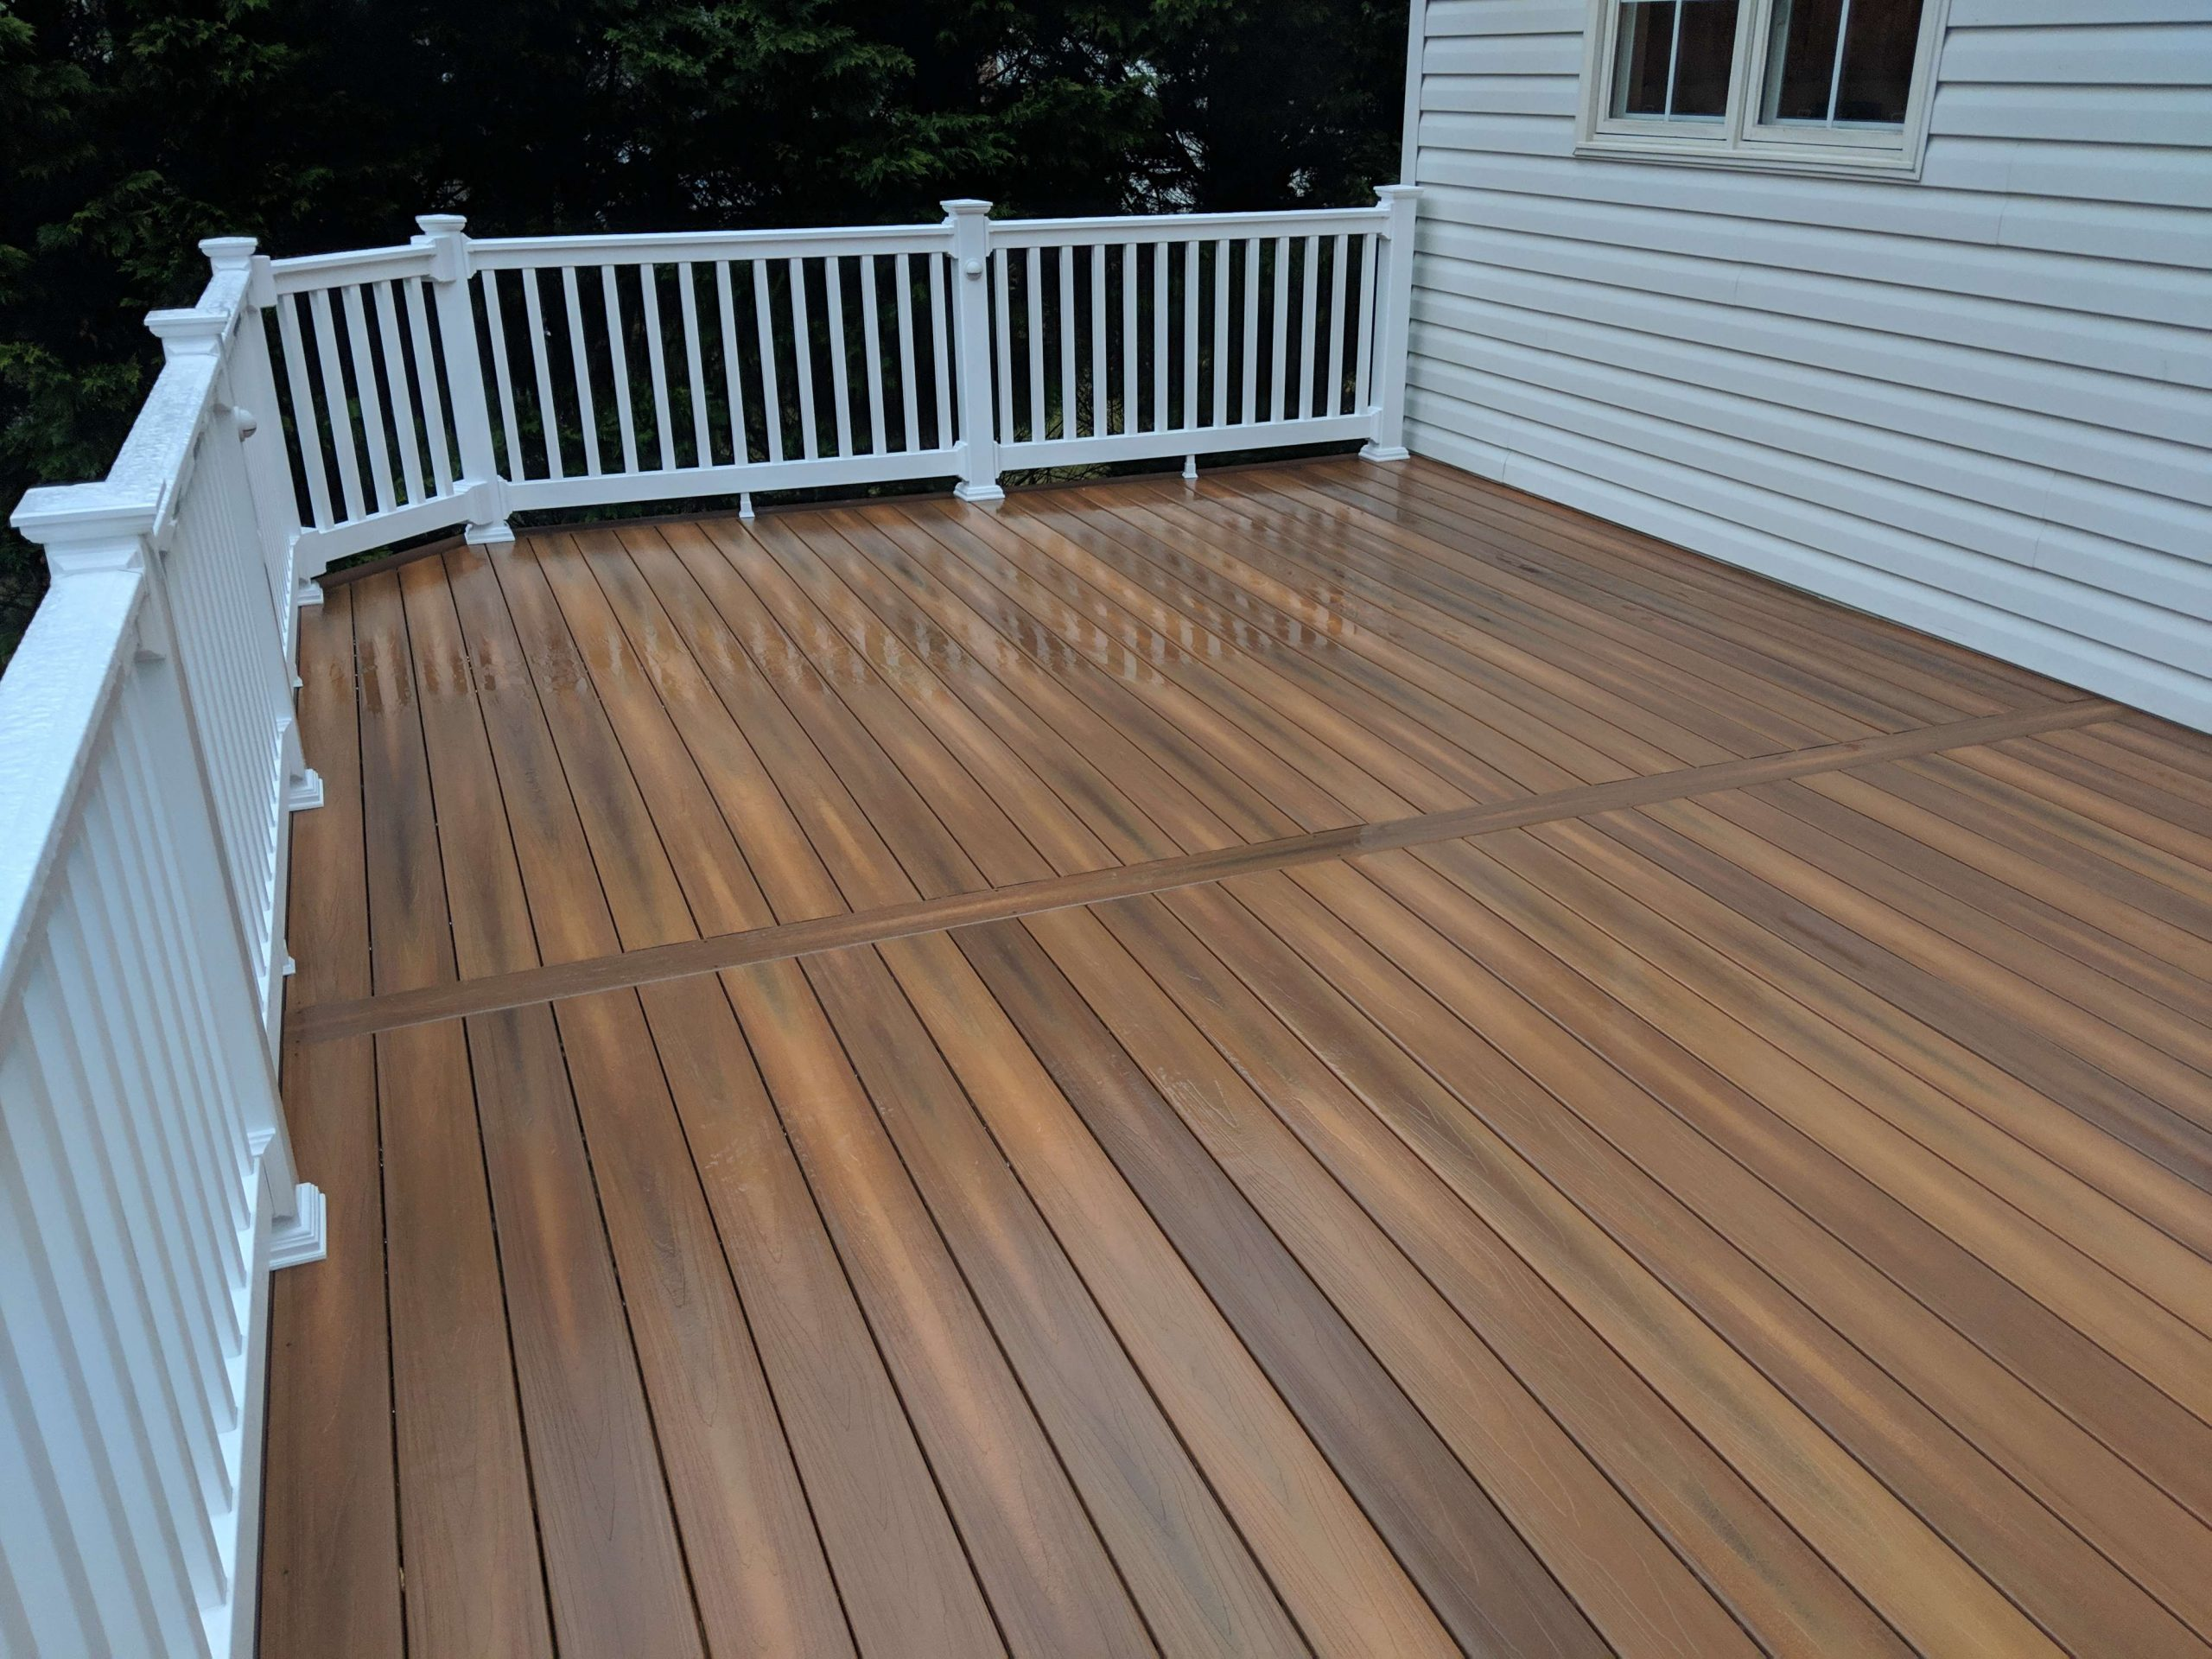 Deck Builder in Columbia - Diamond Decks